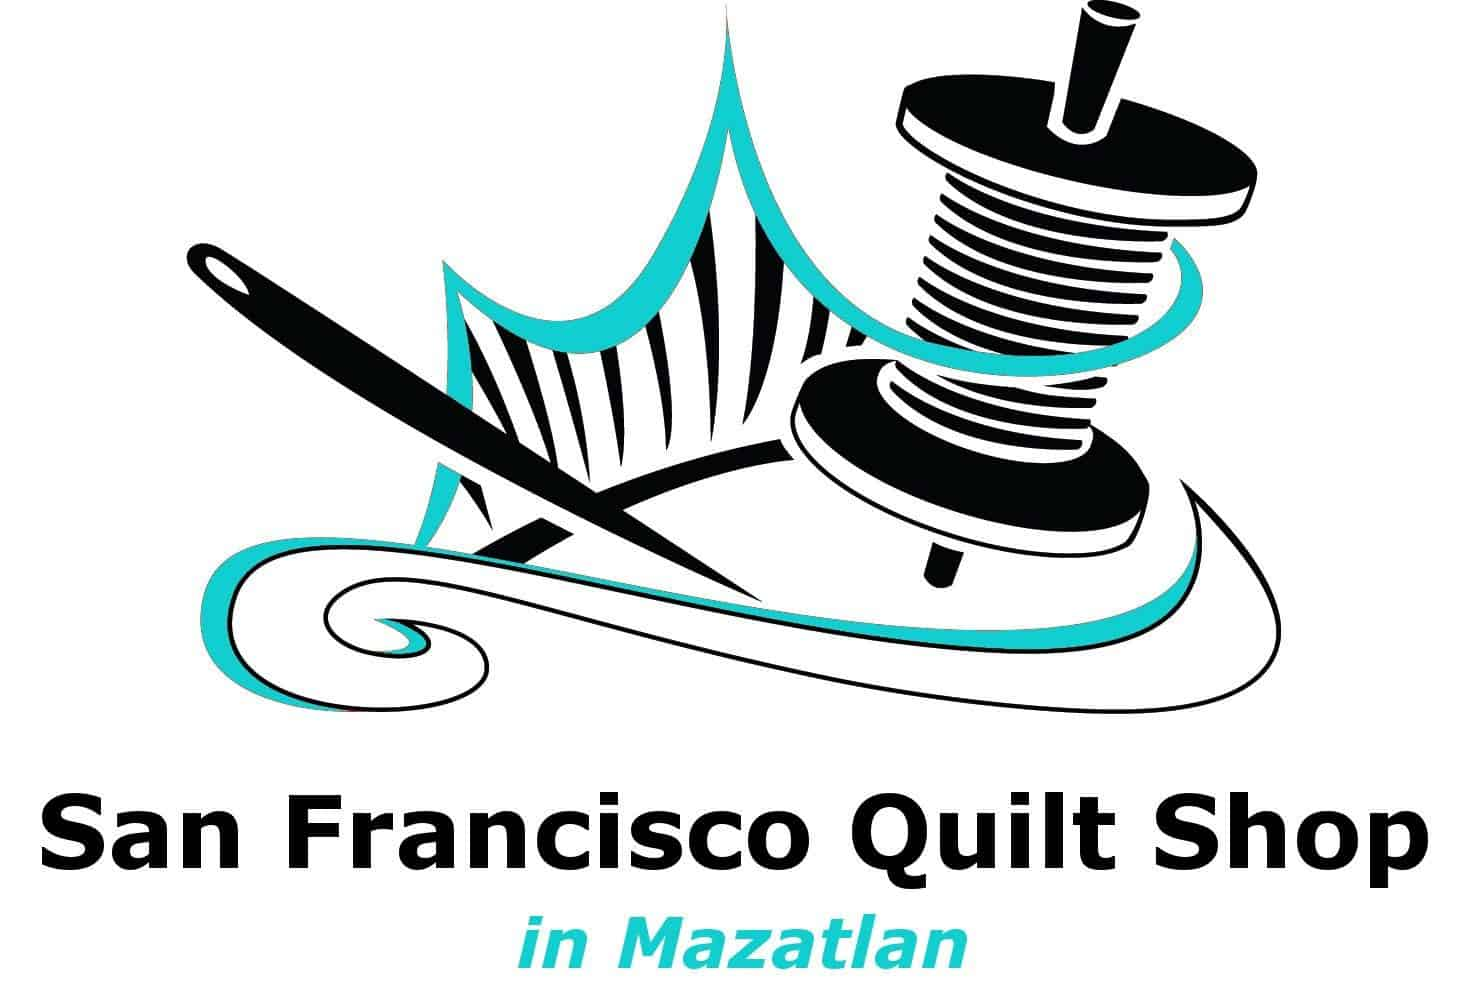 San Francisco Qulkit Shop Logo 1